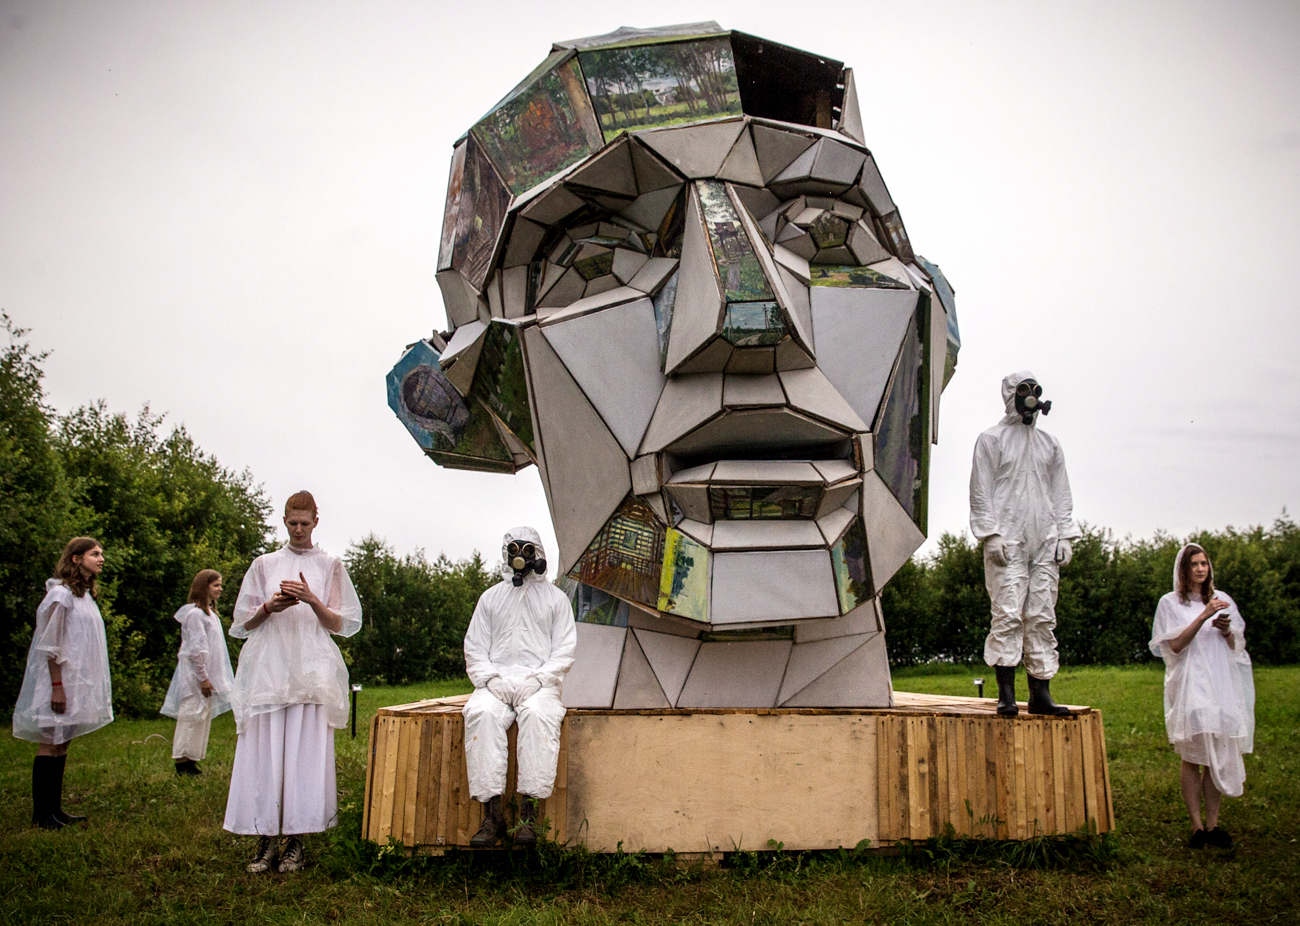 Archstoyanie is a festival of landscape art objects in Nikola-Lenivets village of Kaluga Region (about 200km from Moscow). This object calls 'A head house of homeless' and was made by the artist Pavel Suslov.